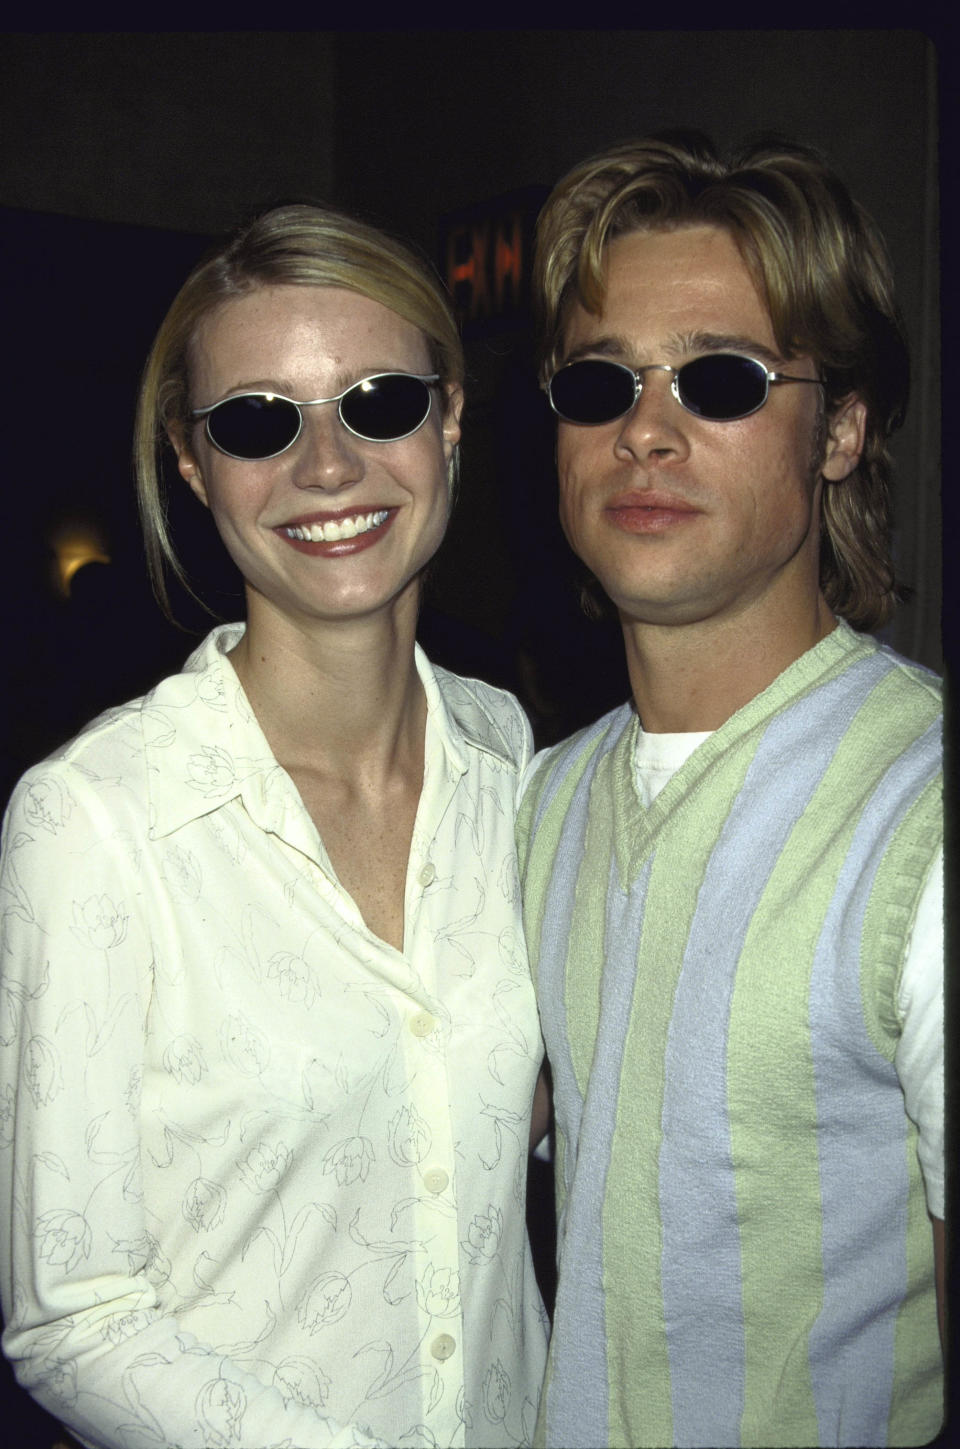 <p>Hollywood went into meltown during the '90s when Brad Pitt and Gwyneth Paltrow started dating. They split in 1997, one year after Brad proposed. They were also big fans of dressing alike. Check out their matchy-matchy sunglasses. Photo: Getty Images </p>